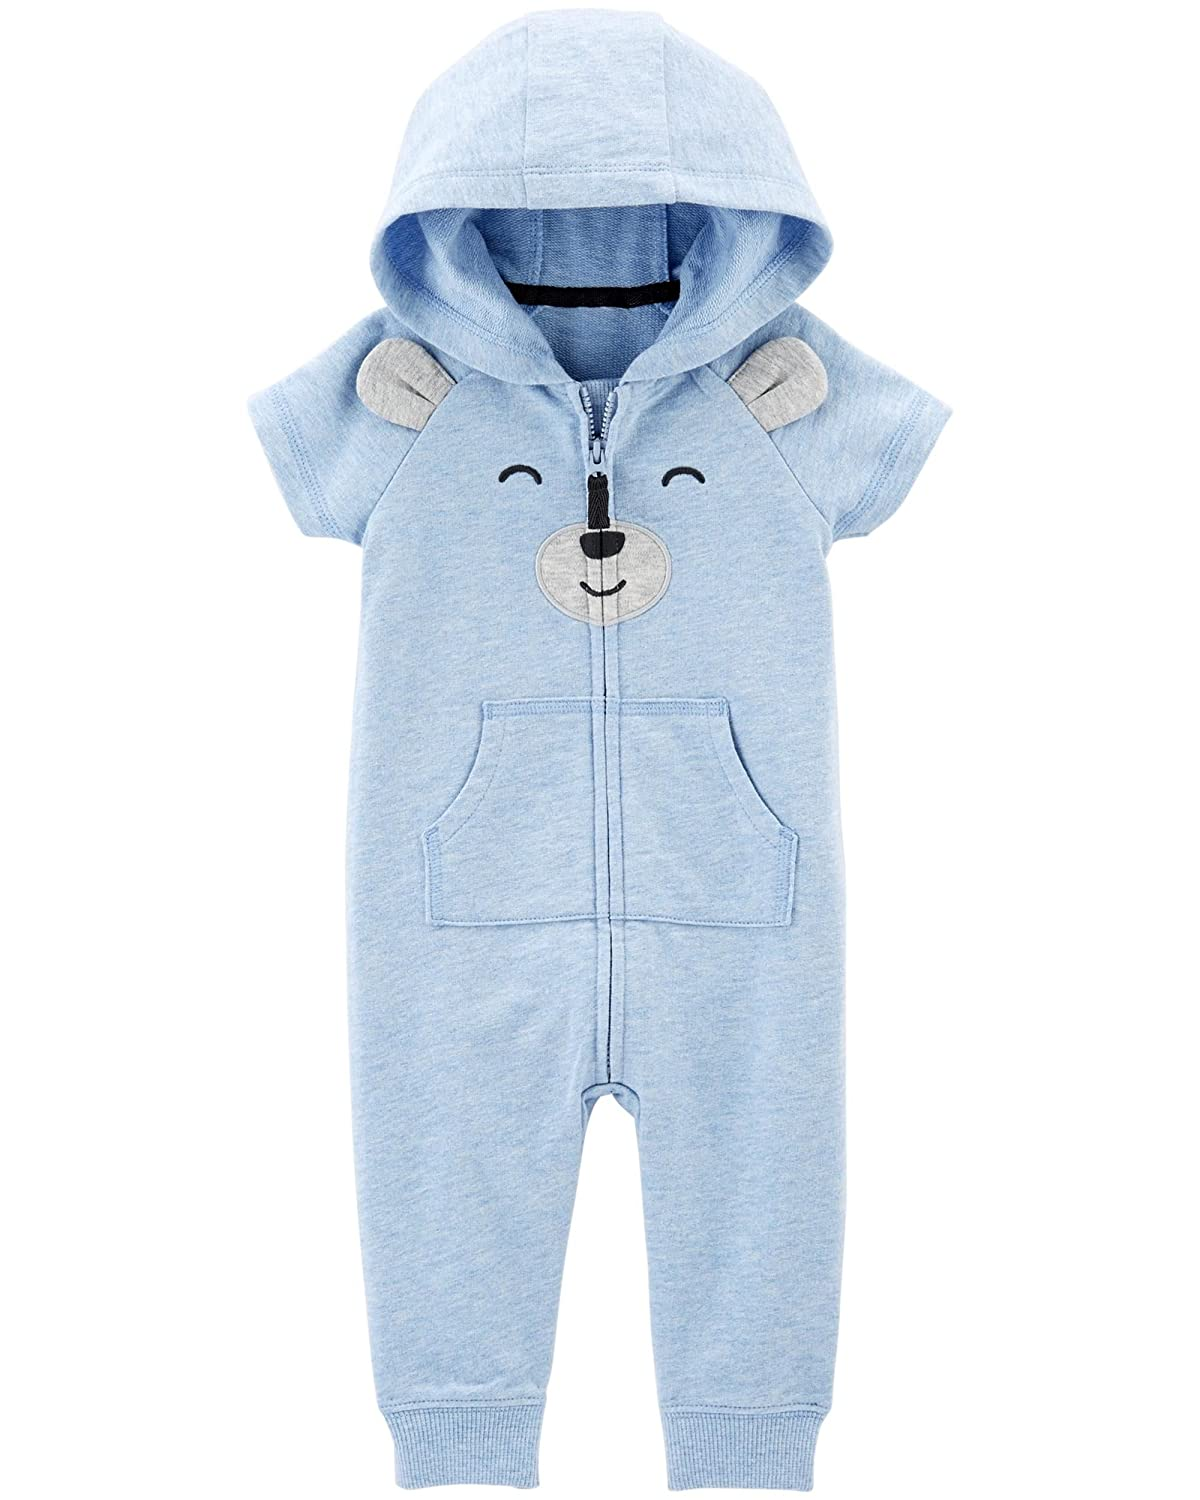 Carters Baby Boys 1 Pc 118g656 Carters